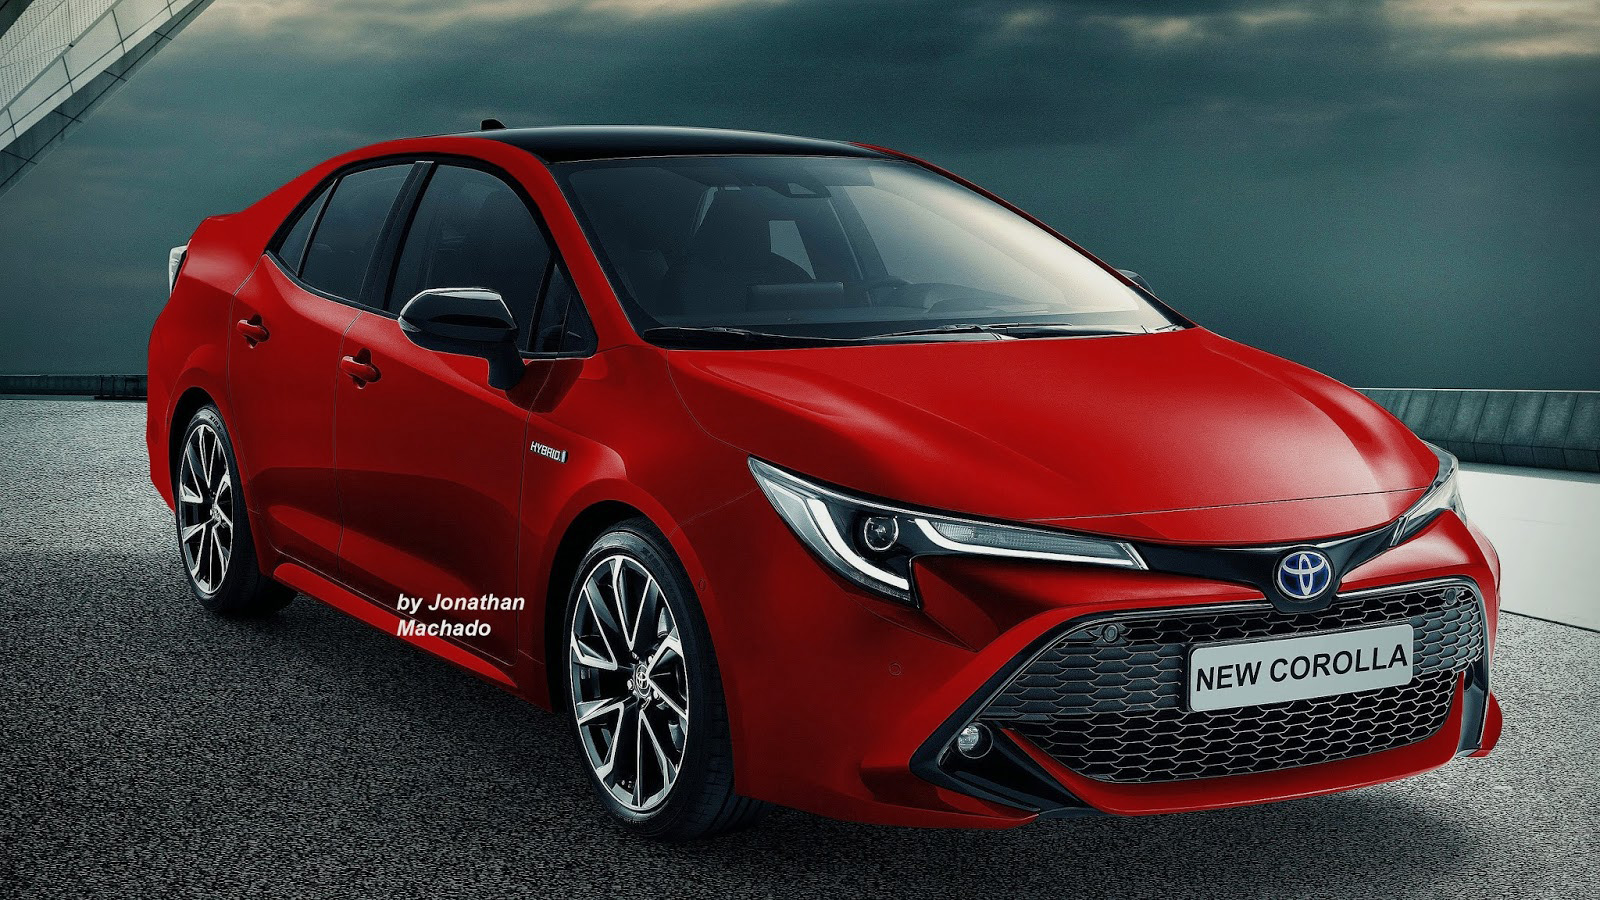 Renderings: Next Generation Toyota Corolla Imagined 17